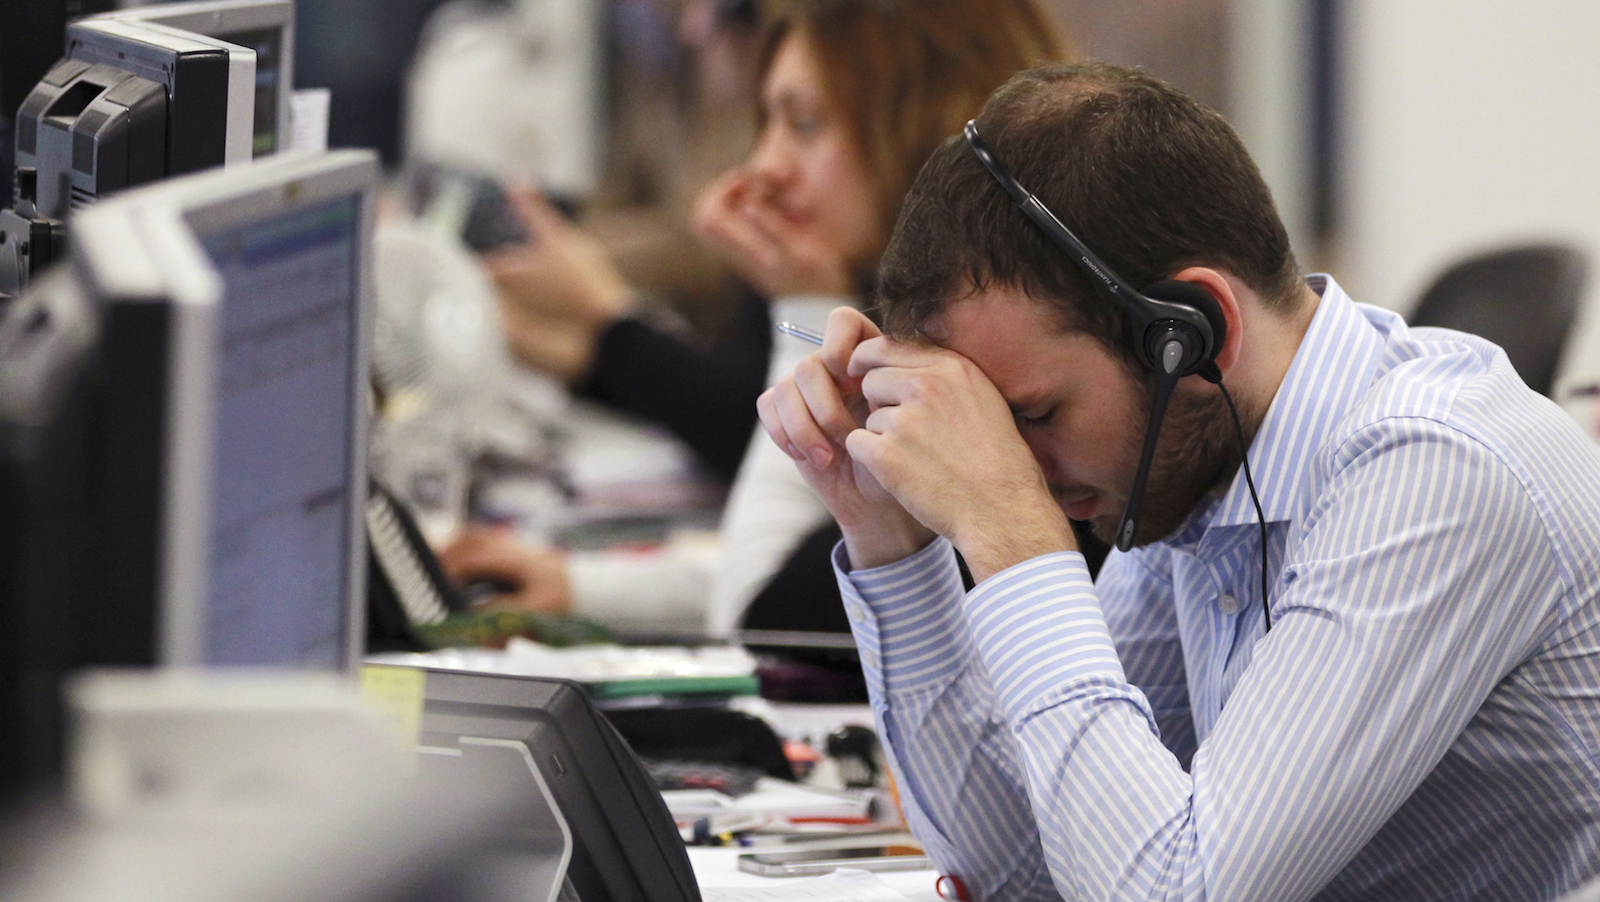 A worker on the IG Group's trading floor looks away from his screens in the City of London, October 4, 2011. Britain's top share index fell sharply by midday on Tuesday as worries over the euro zone debt crisis and the sustainability of global growth prompted investors to cut positions in riskier assets such as banks and commodity stocks.